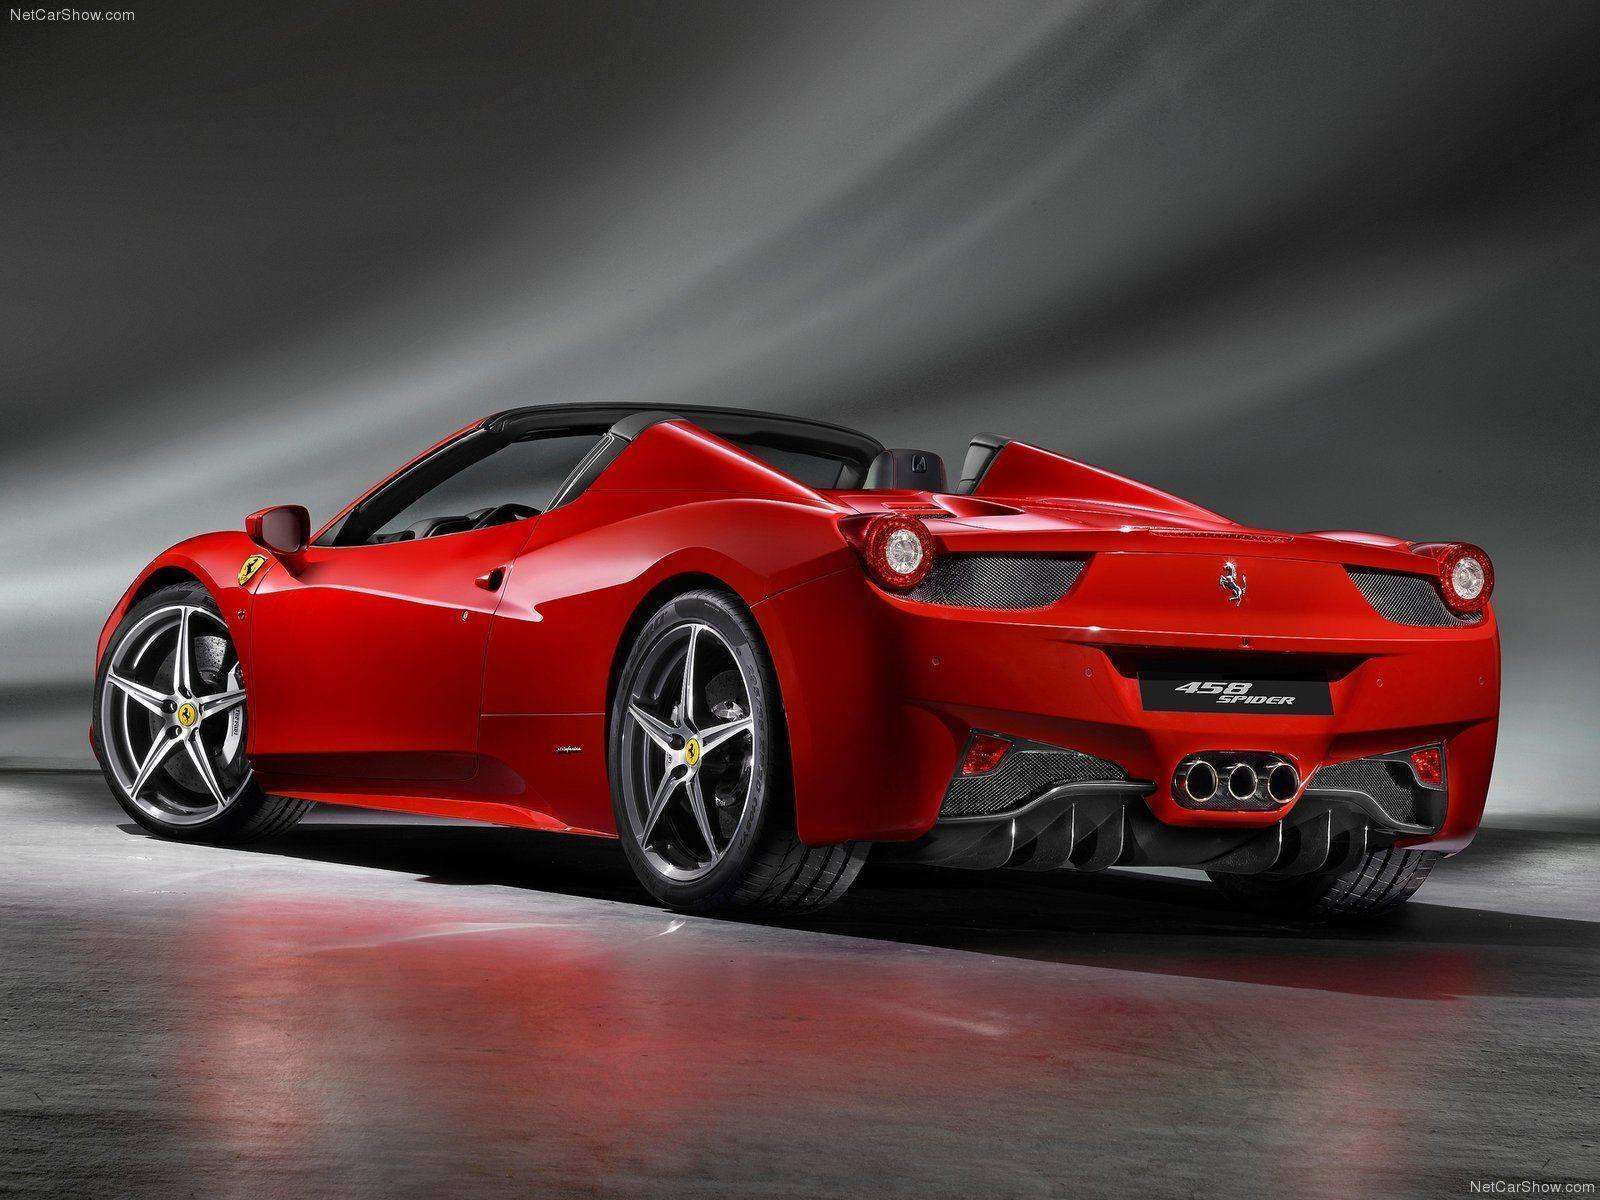 Ferrari Spider Wallpapers Top Free Ferrari Spider Backgrounds Wallpaperaccess